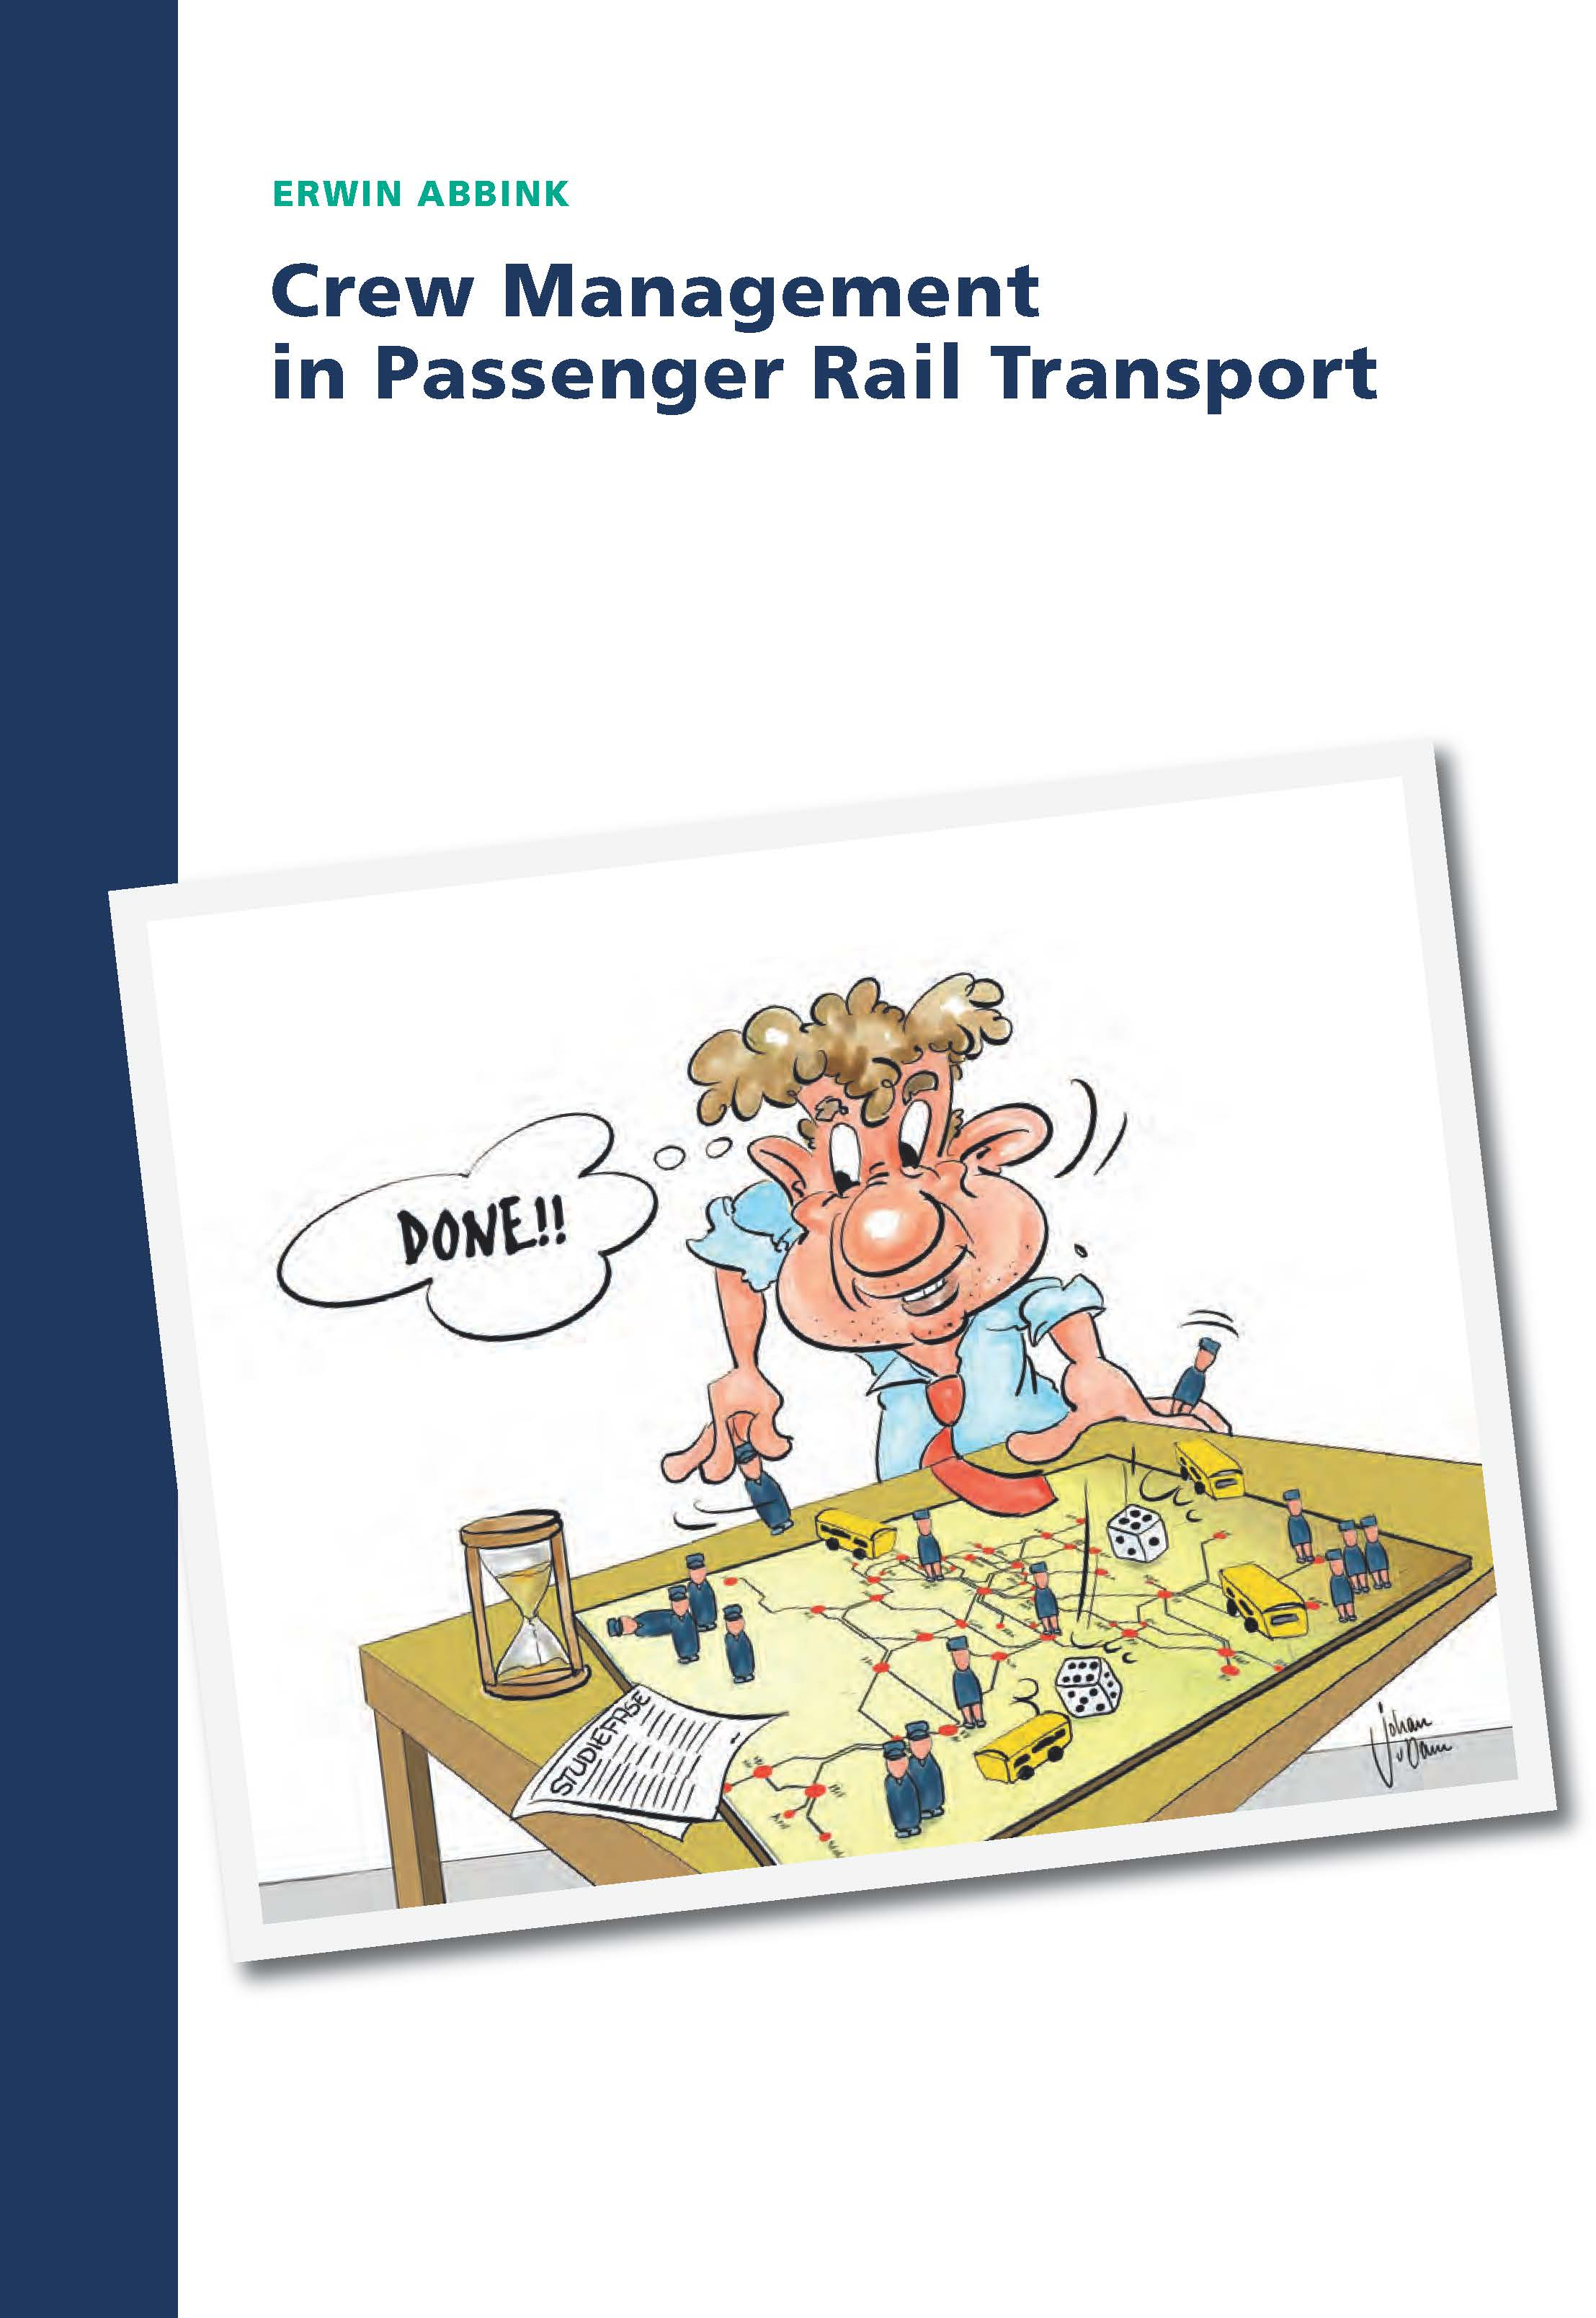 Crew Management in Passenger Rail Transport